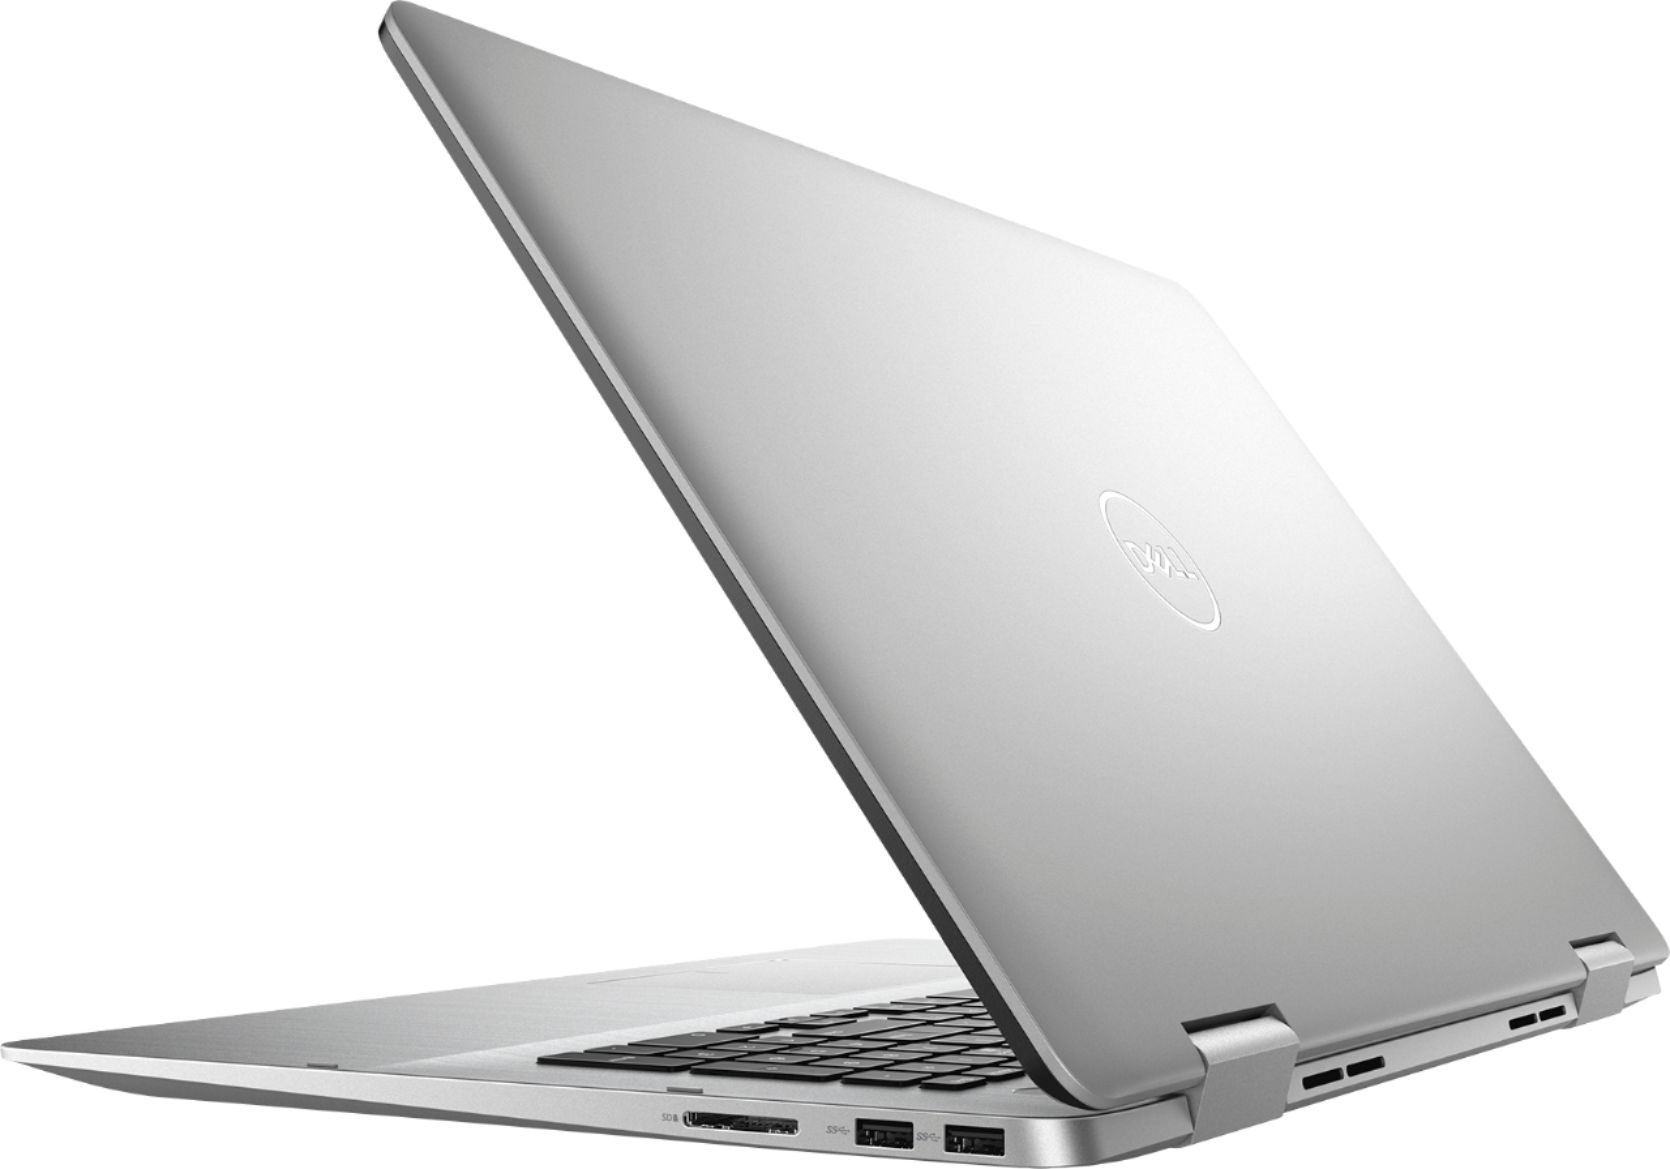 """Alt View Zoom 1. Dell - Inspiron 2-in-1 17.3"""" Geek Squad Certified Refurbished Touch-Screen Laptop - Intel Core i7 - 16GB Memory - 512GB SSD - Silver."""